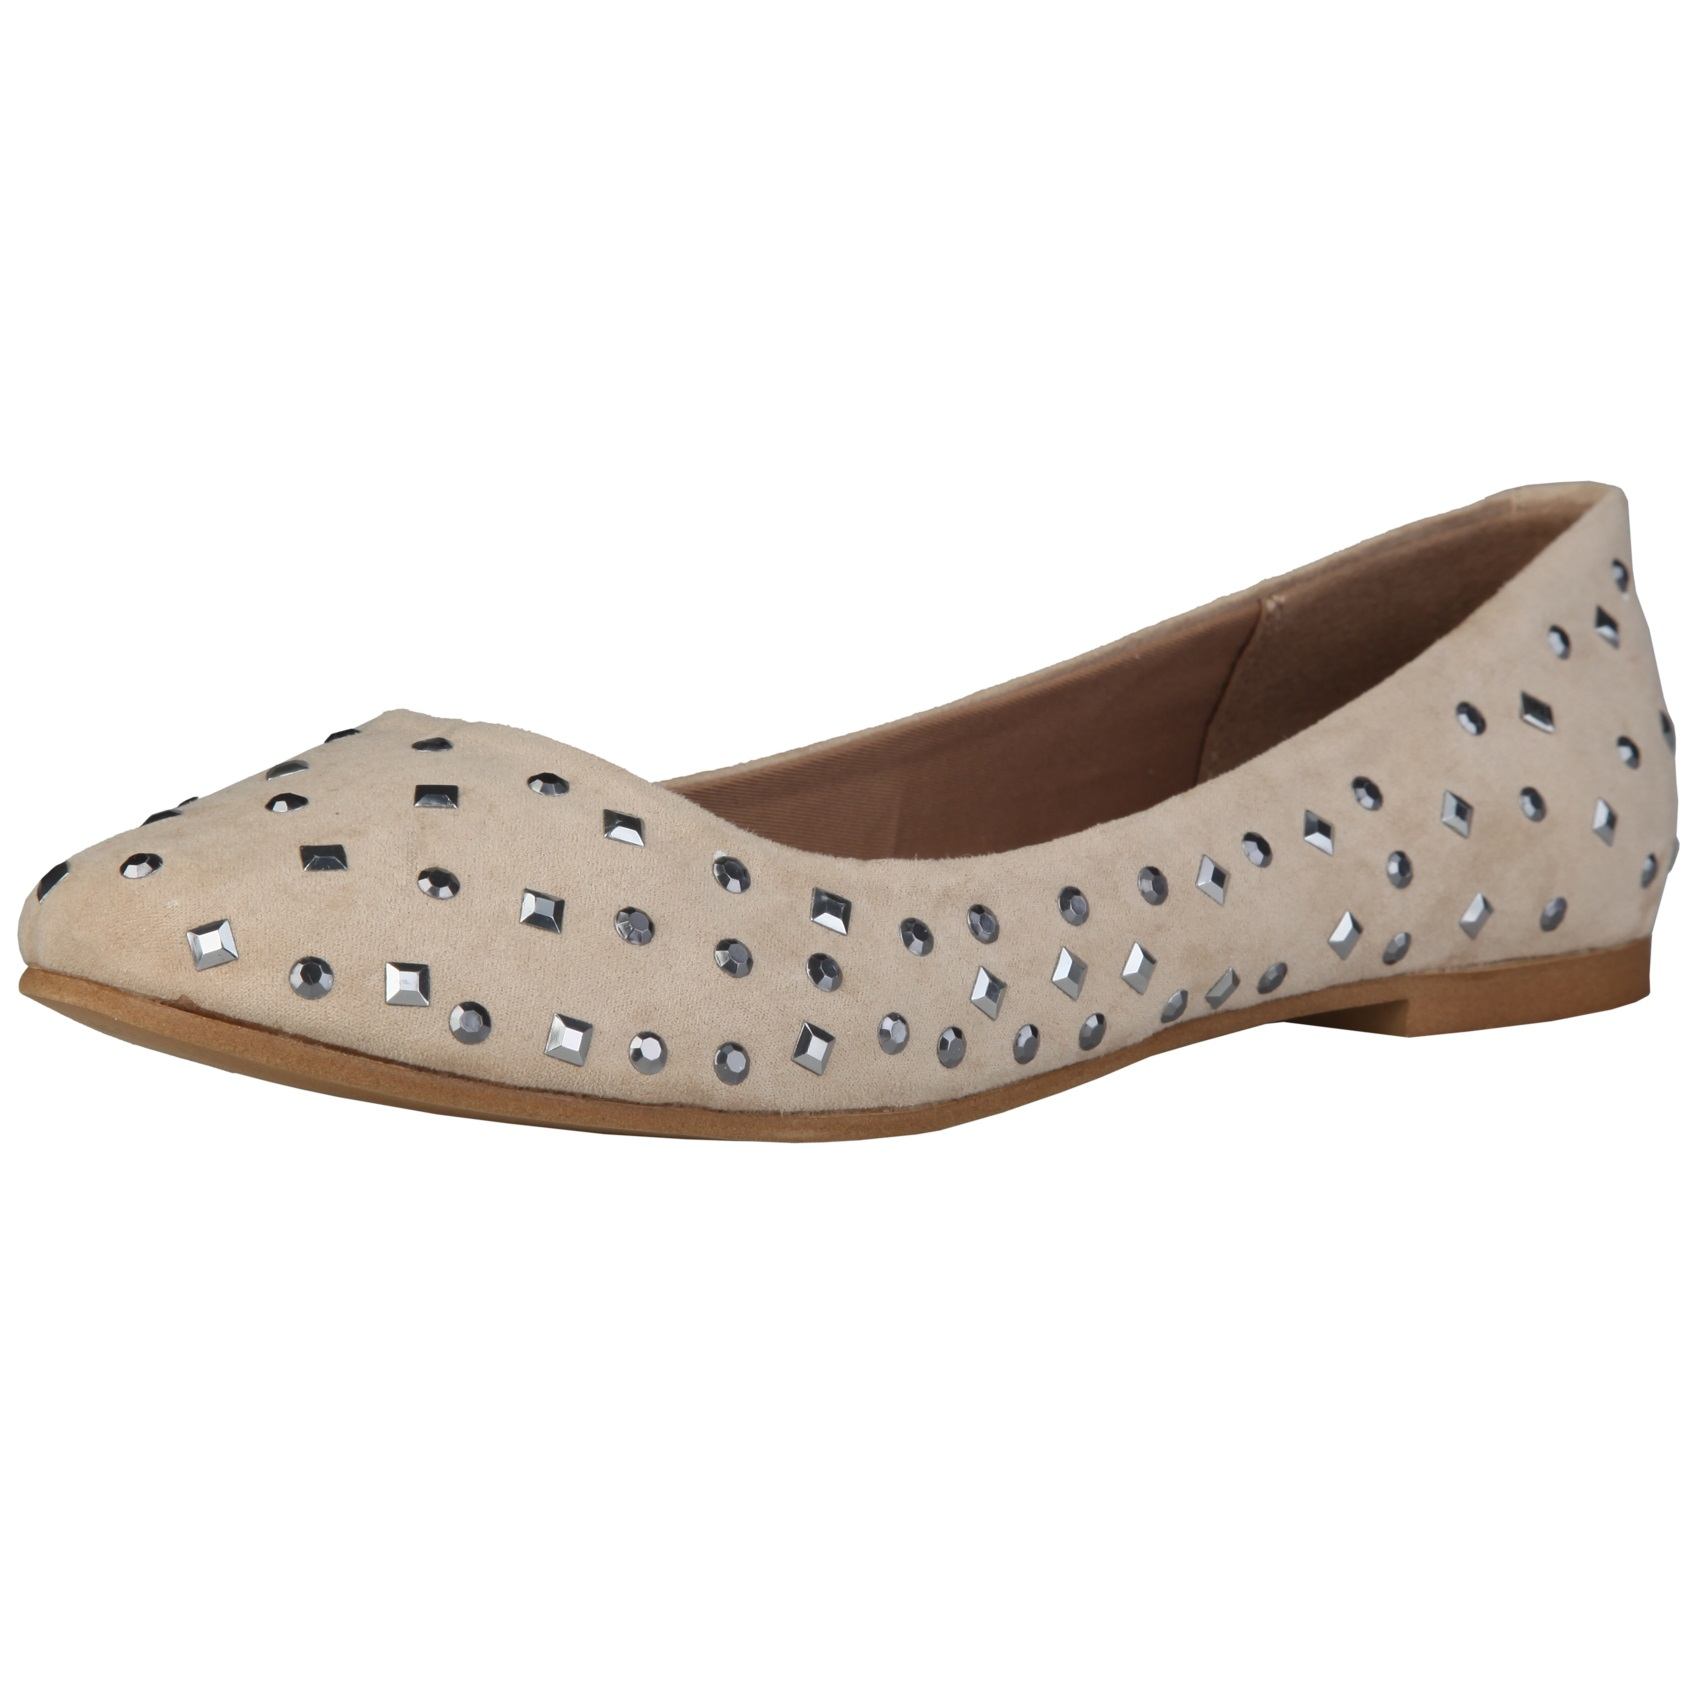 Sofia Loes Flat Shoes Beige Rf600151